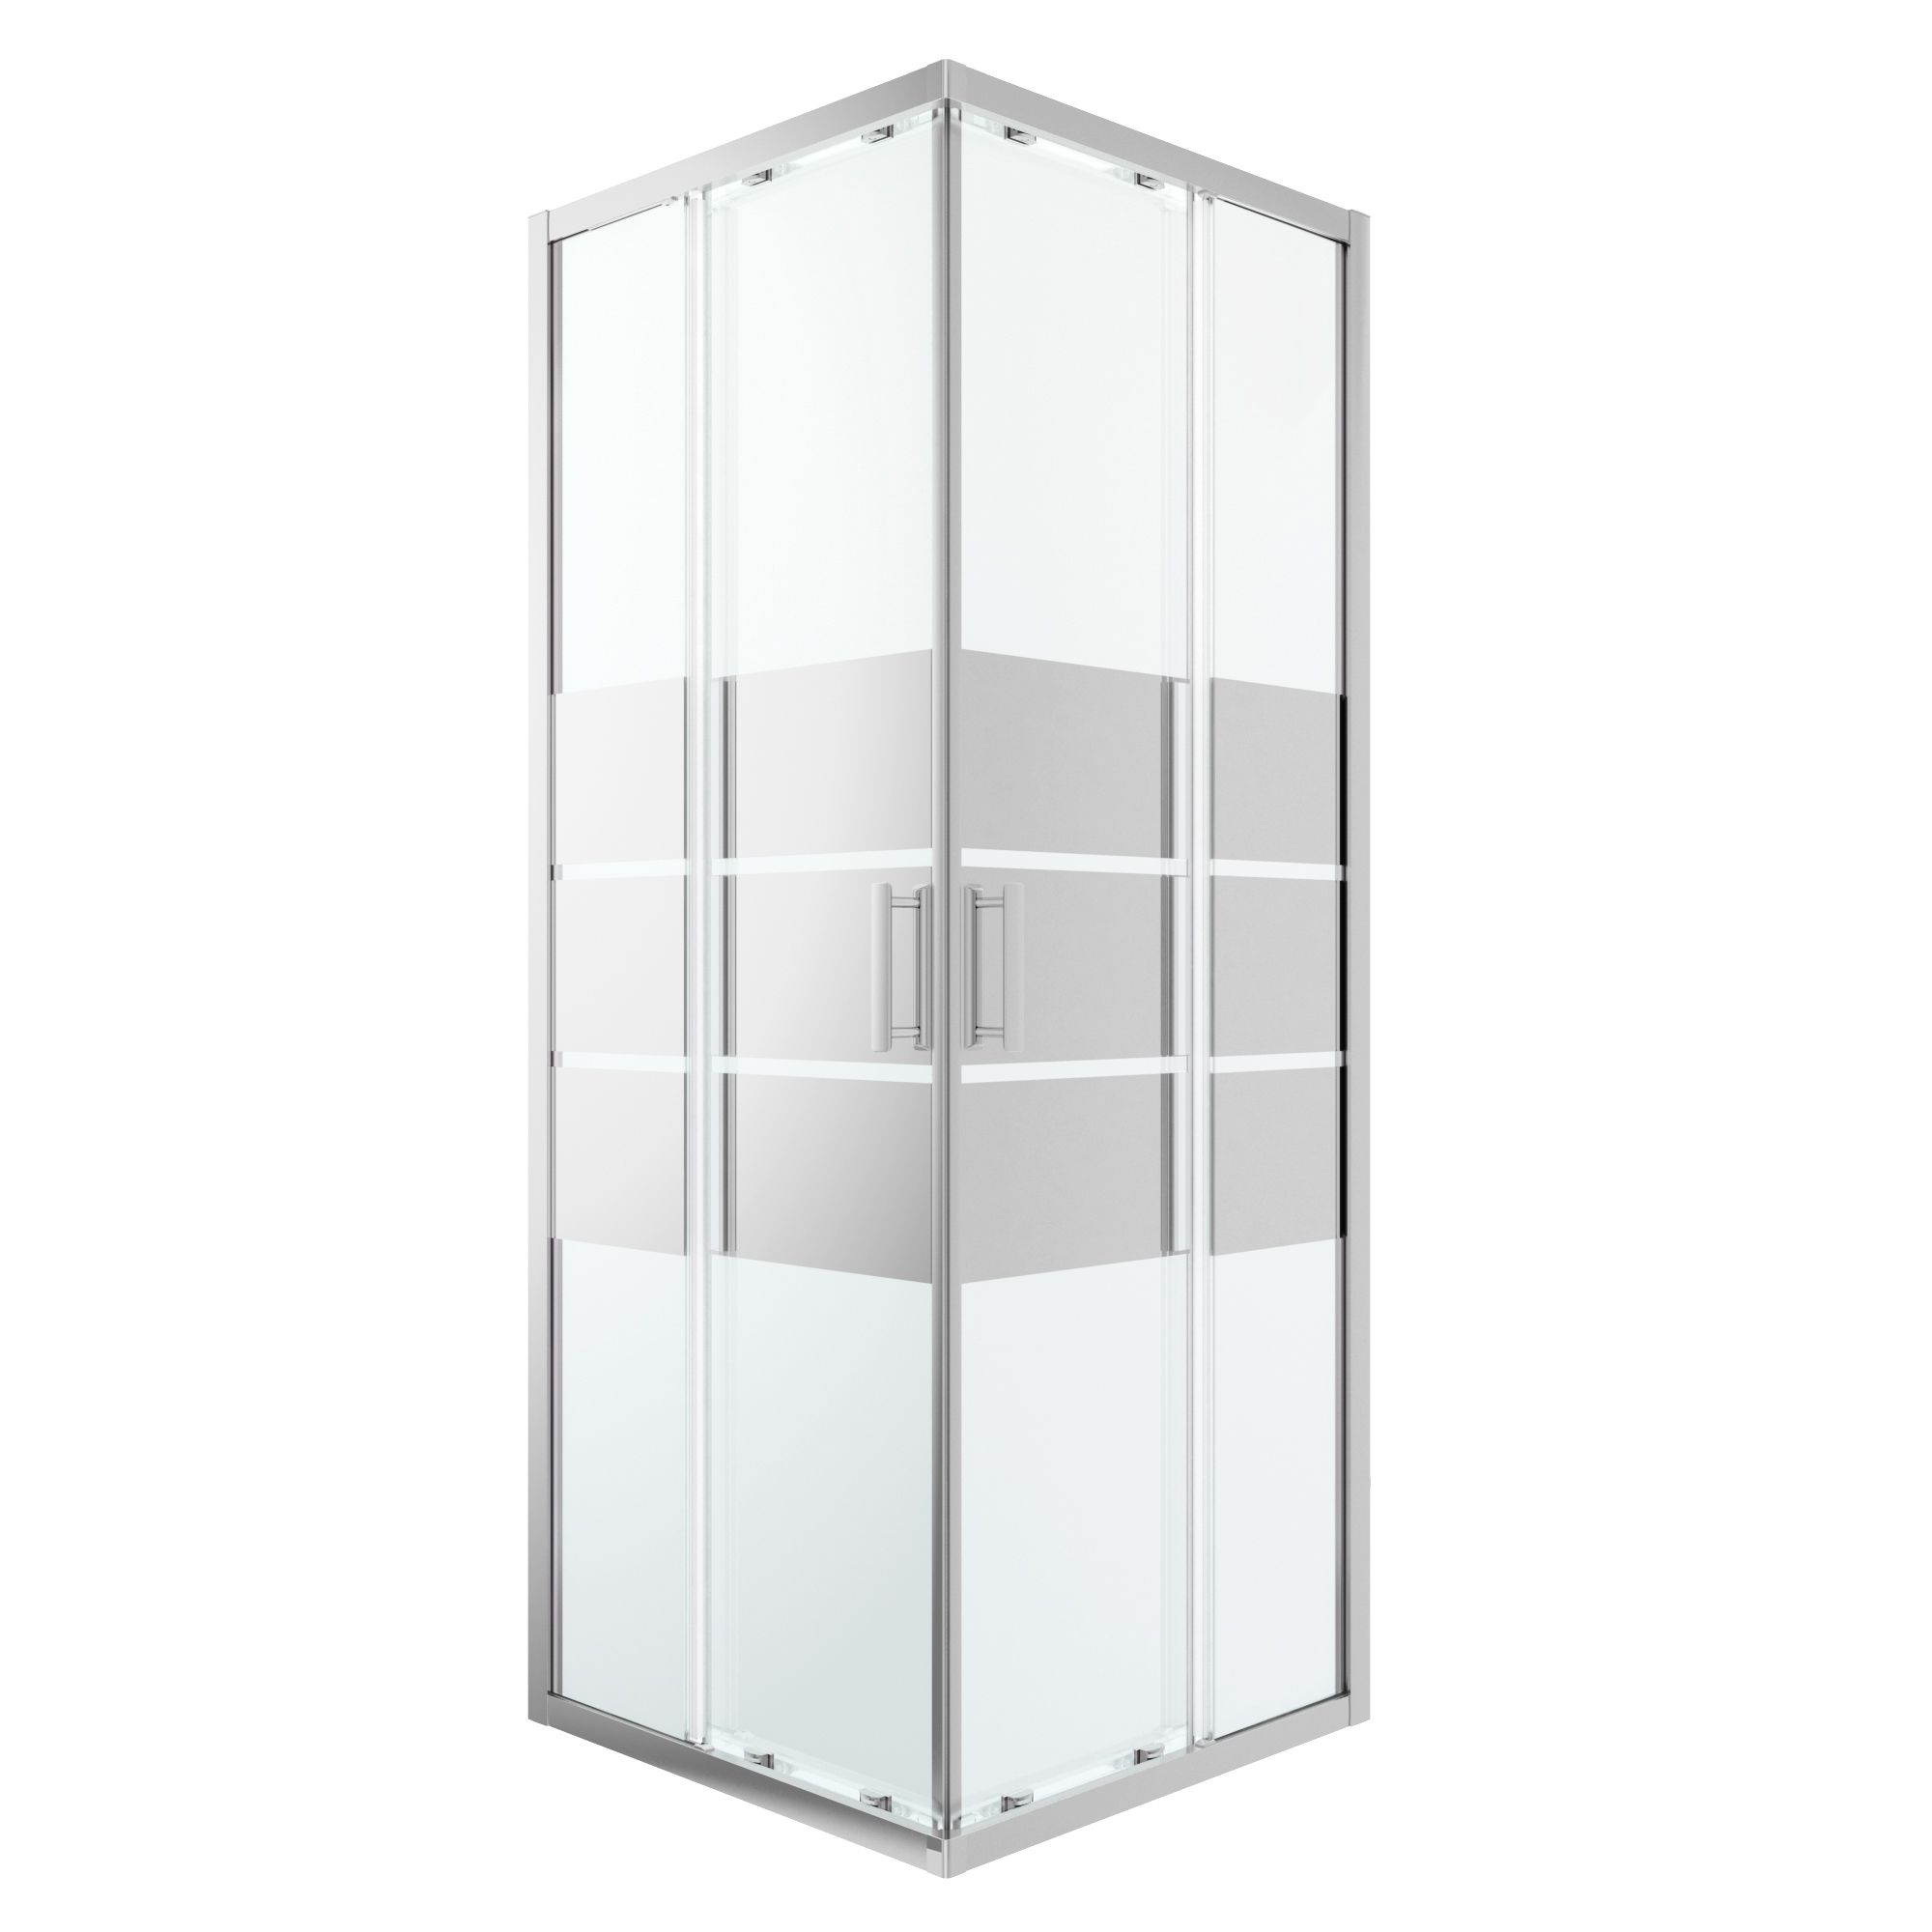 GoodHome Beloya Square Shower enclosure & tray pack with ...